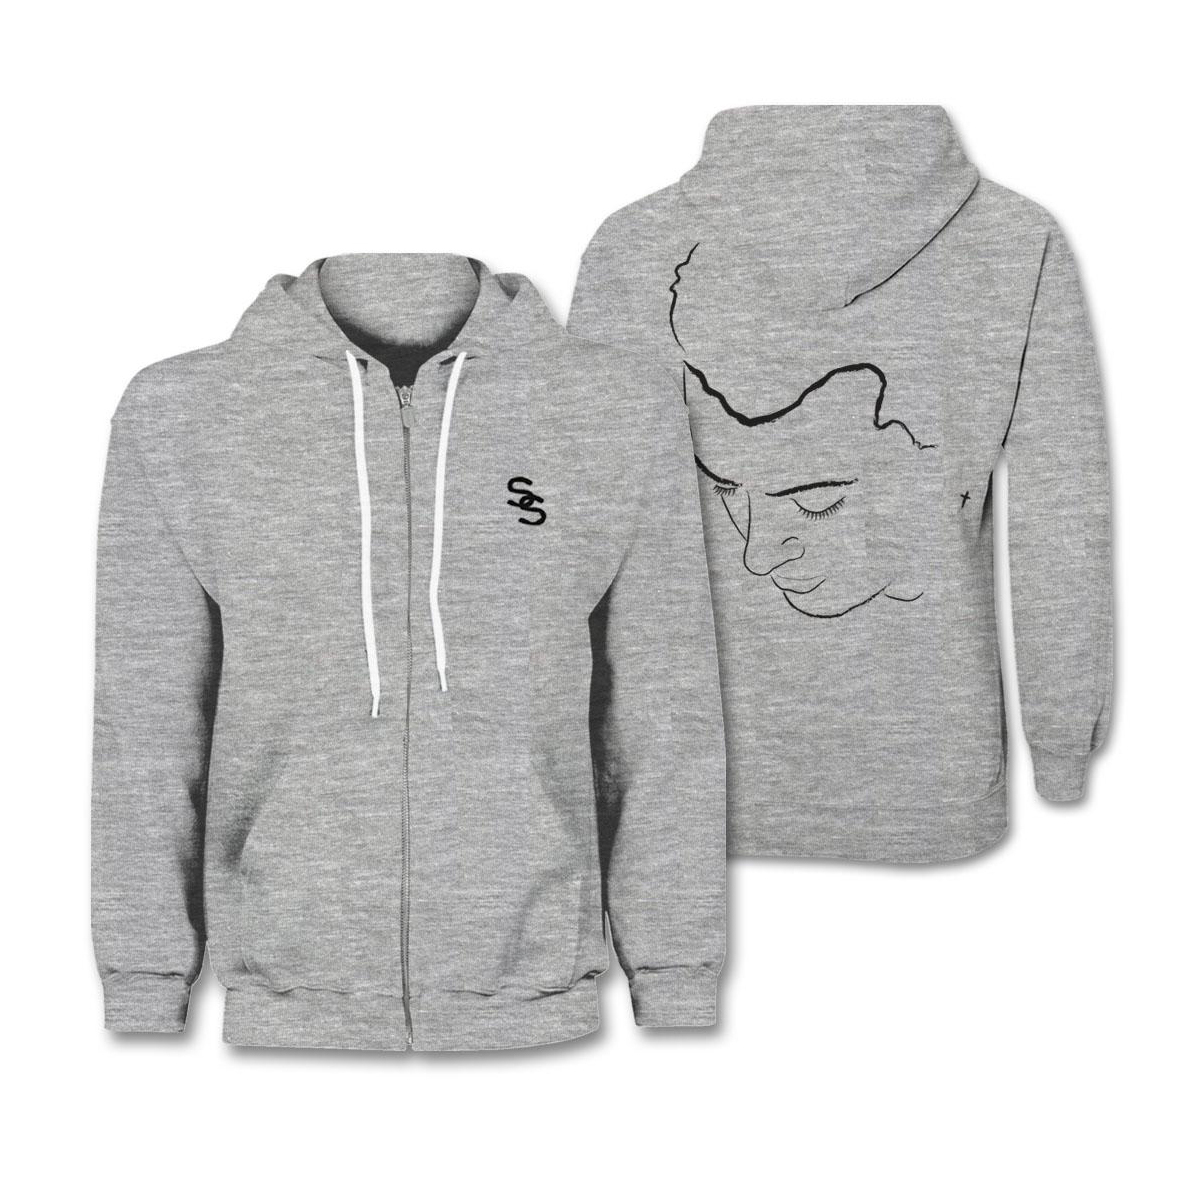 Sam Smith Portrait Zip Hoodie